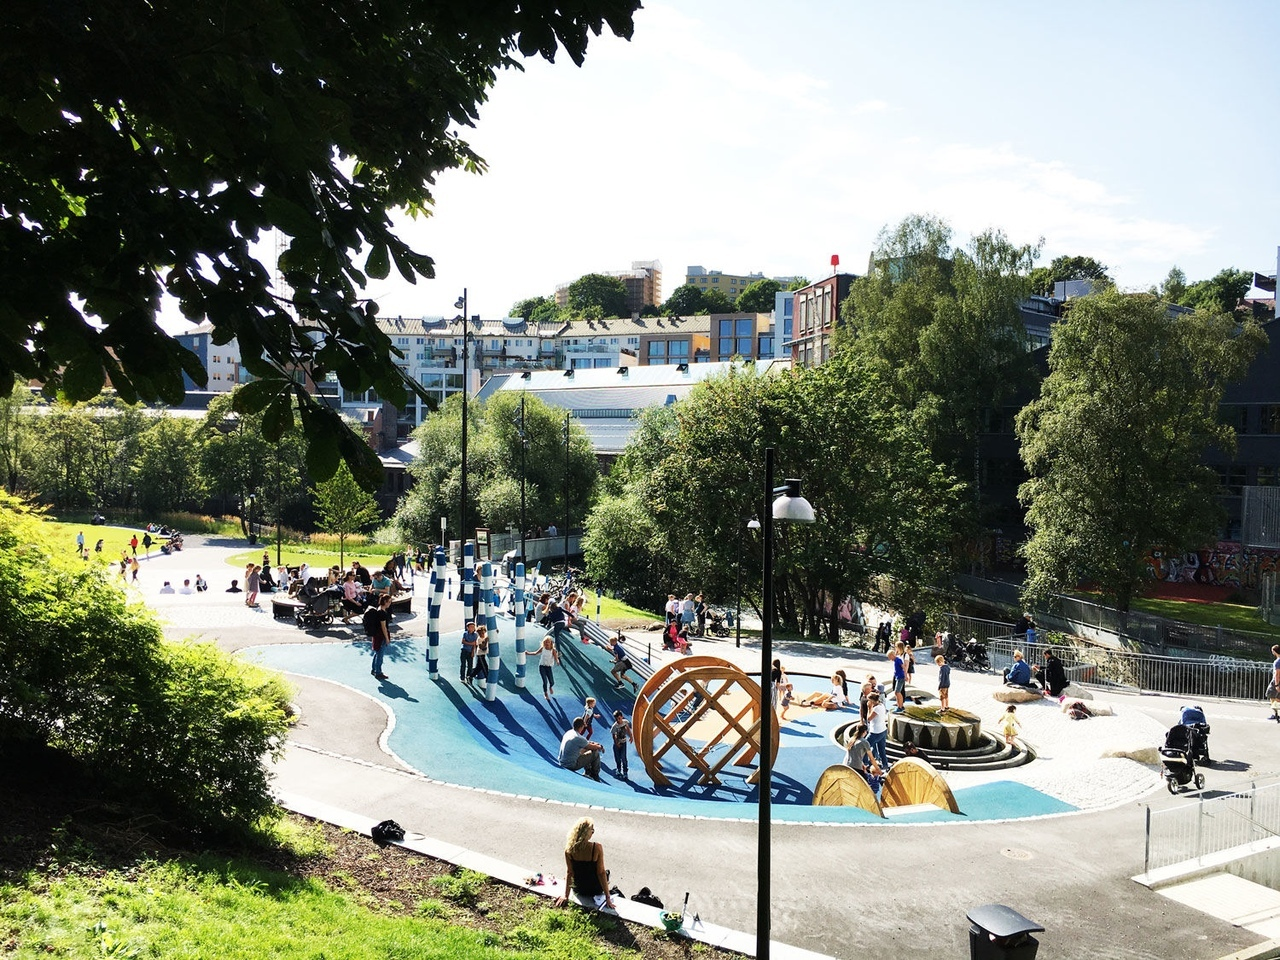 Nedre Foss Park by Norconsult